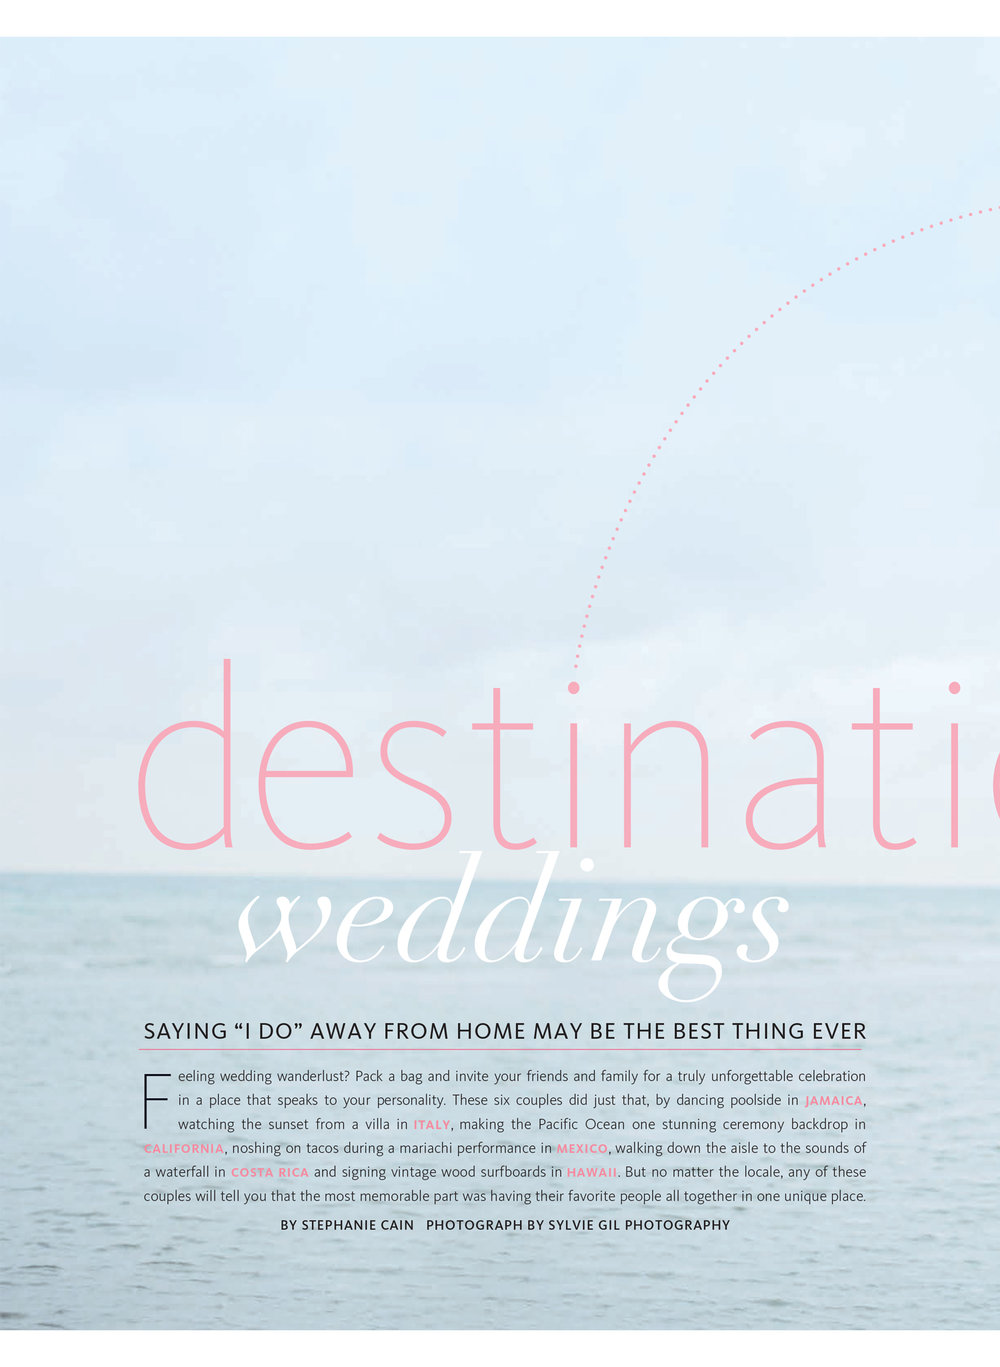 Karen & Mark's Caribbean wedding featured in The Knot National; Sylvie Gil Photography